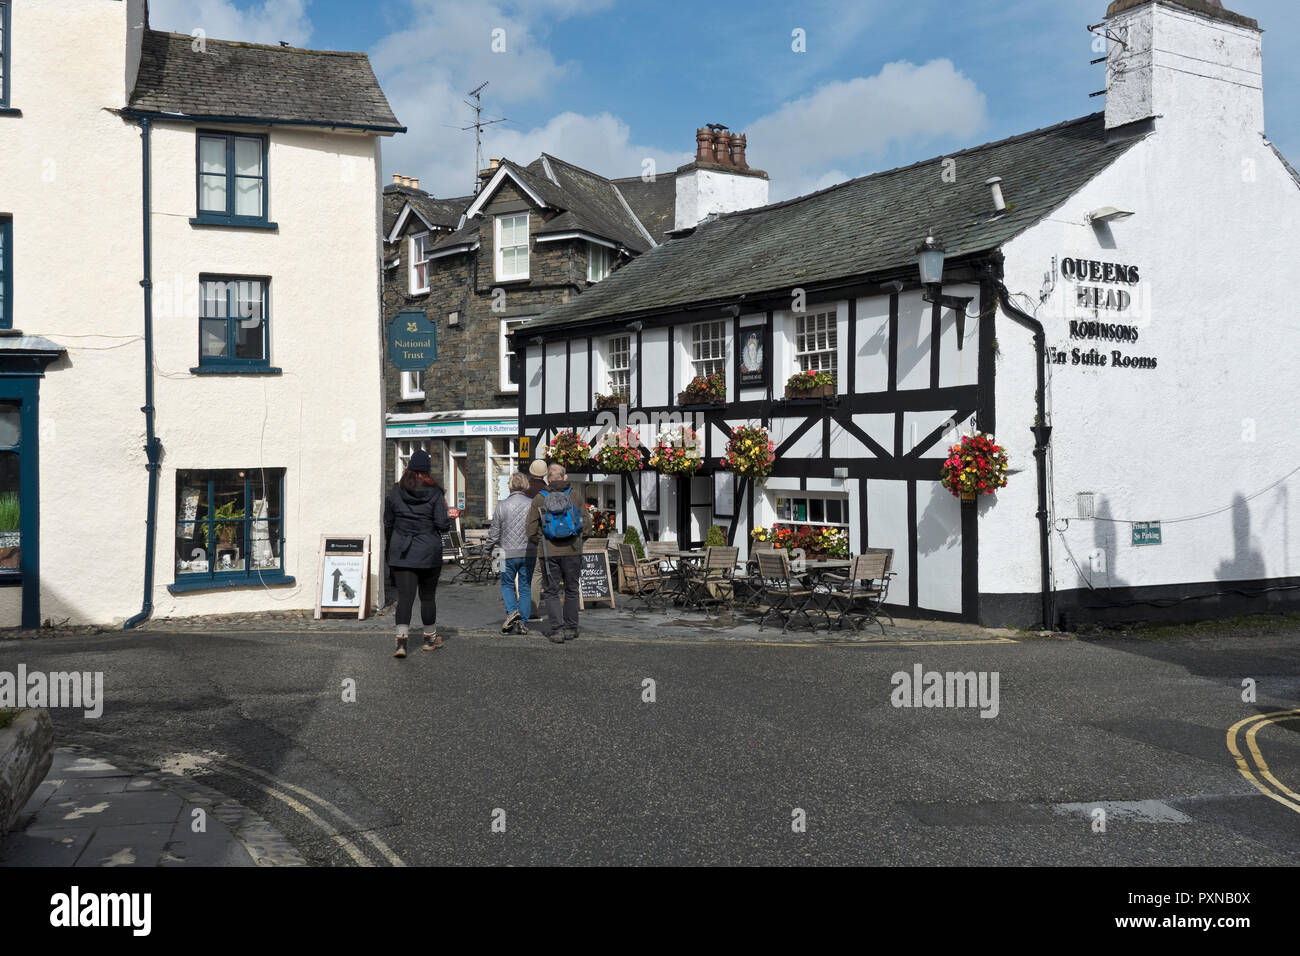 The Queens Head village pub at Hawkshead Cumbria England UK United Kingdom GB Great Britain - Stock Image